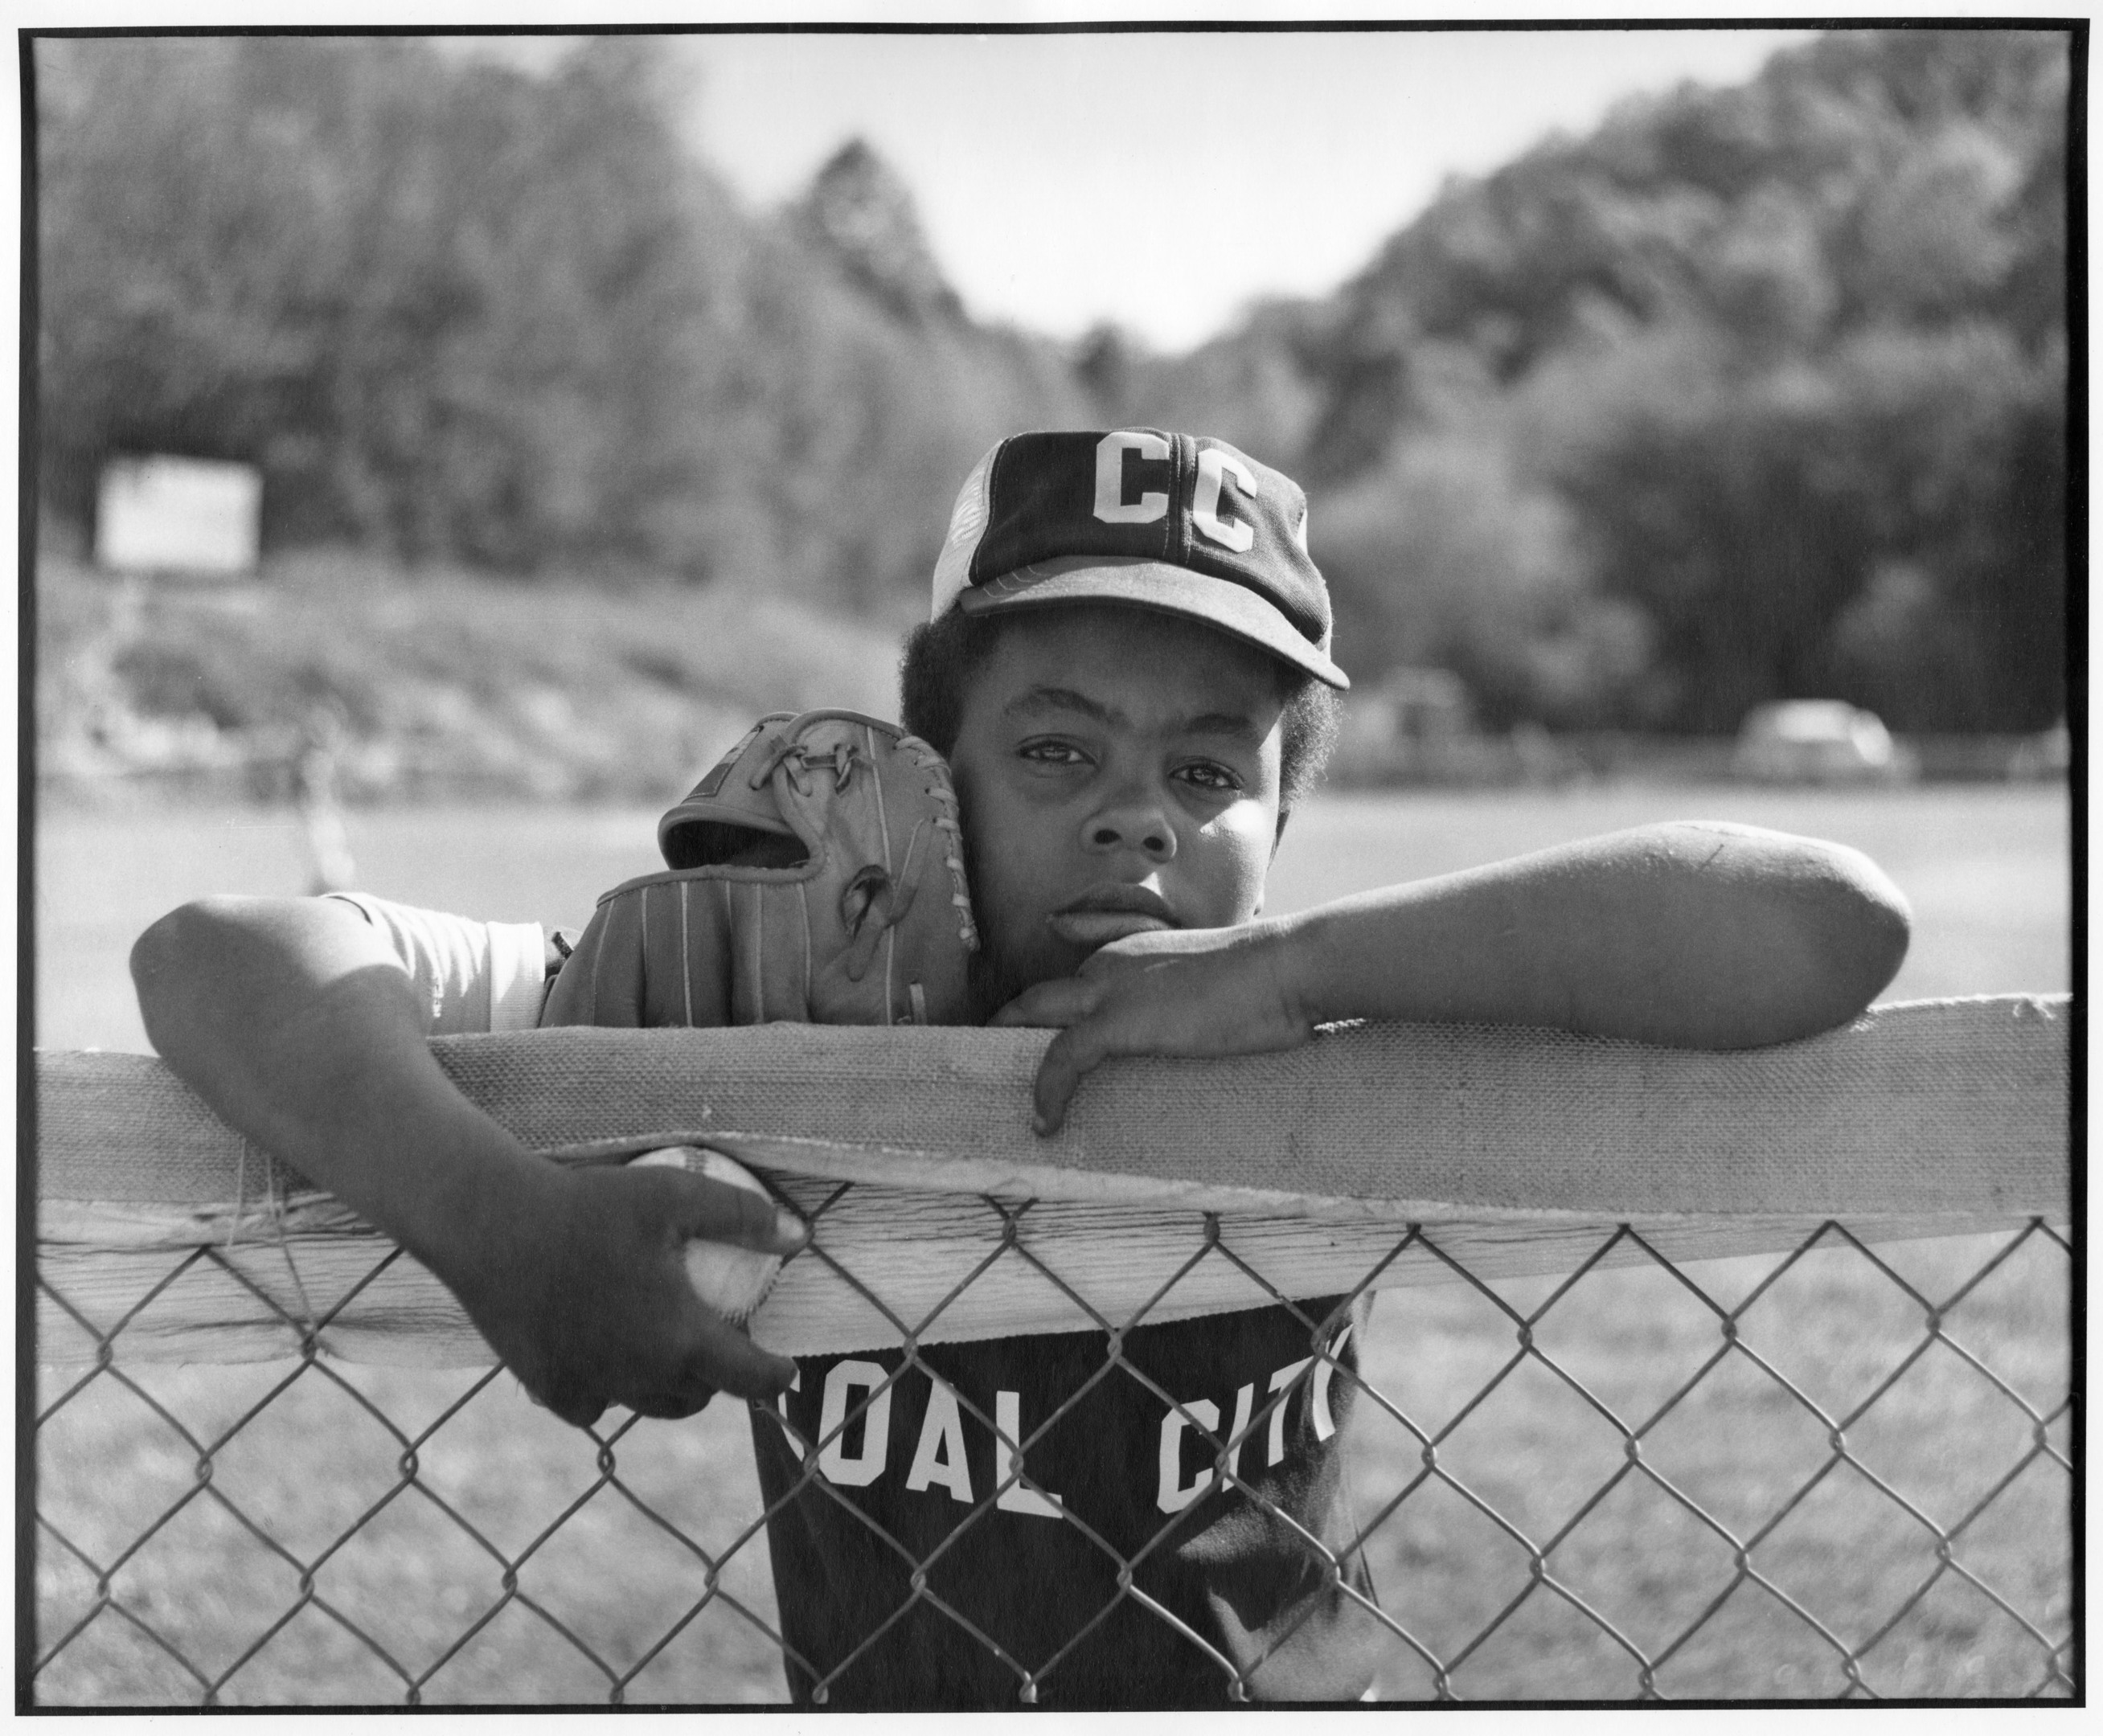 Image of young baseball player. Credit: Ted Wathen